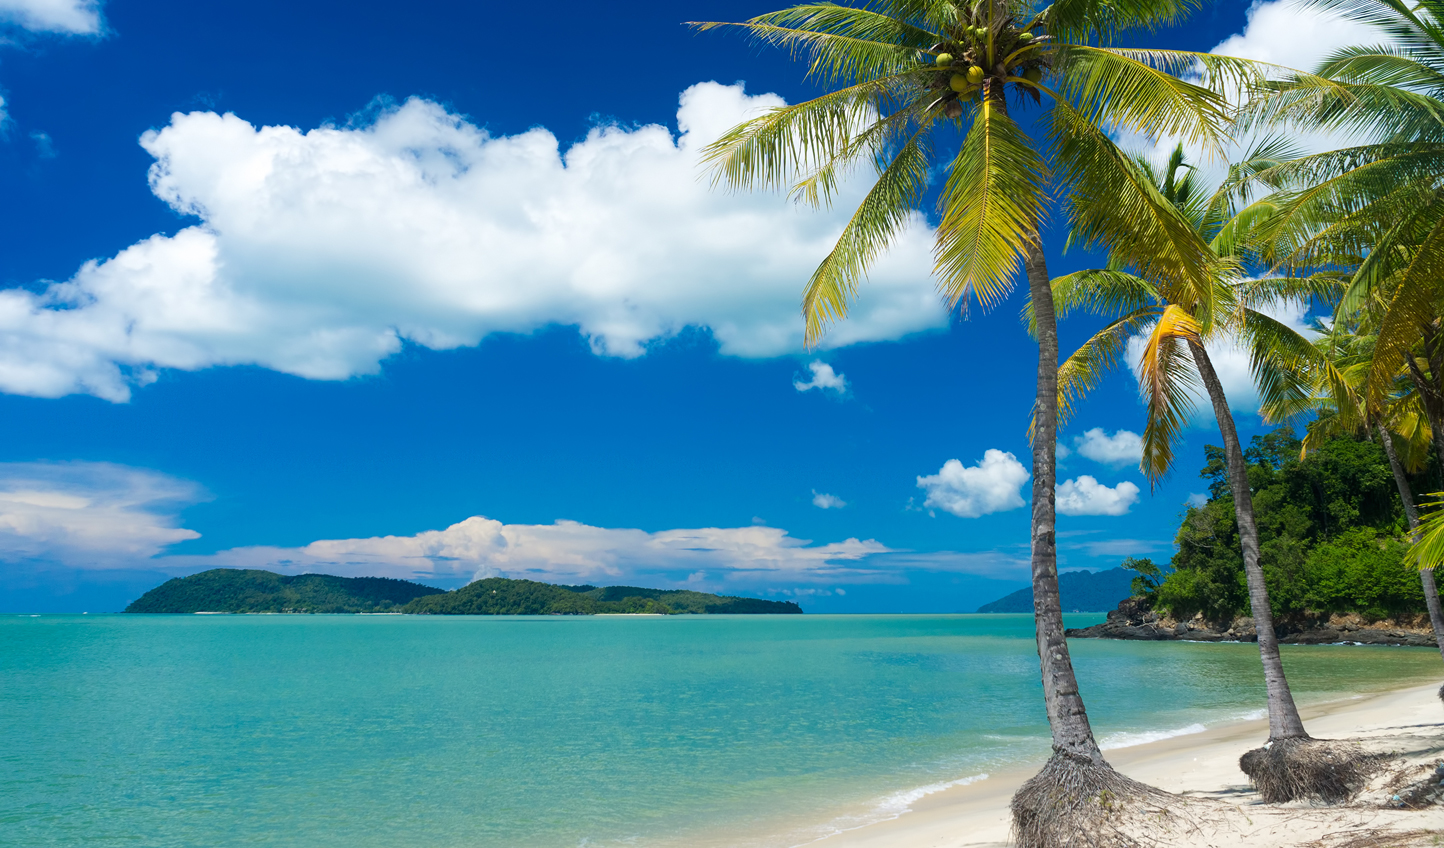 The beaches of Langkawi are the best in South East Asia